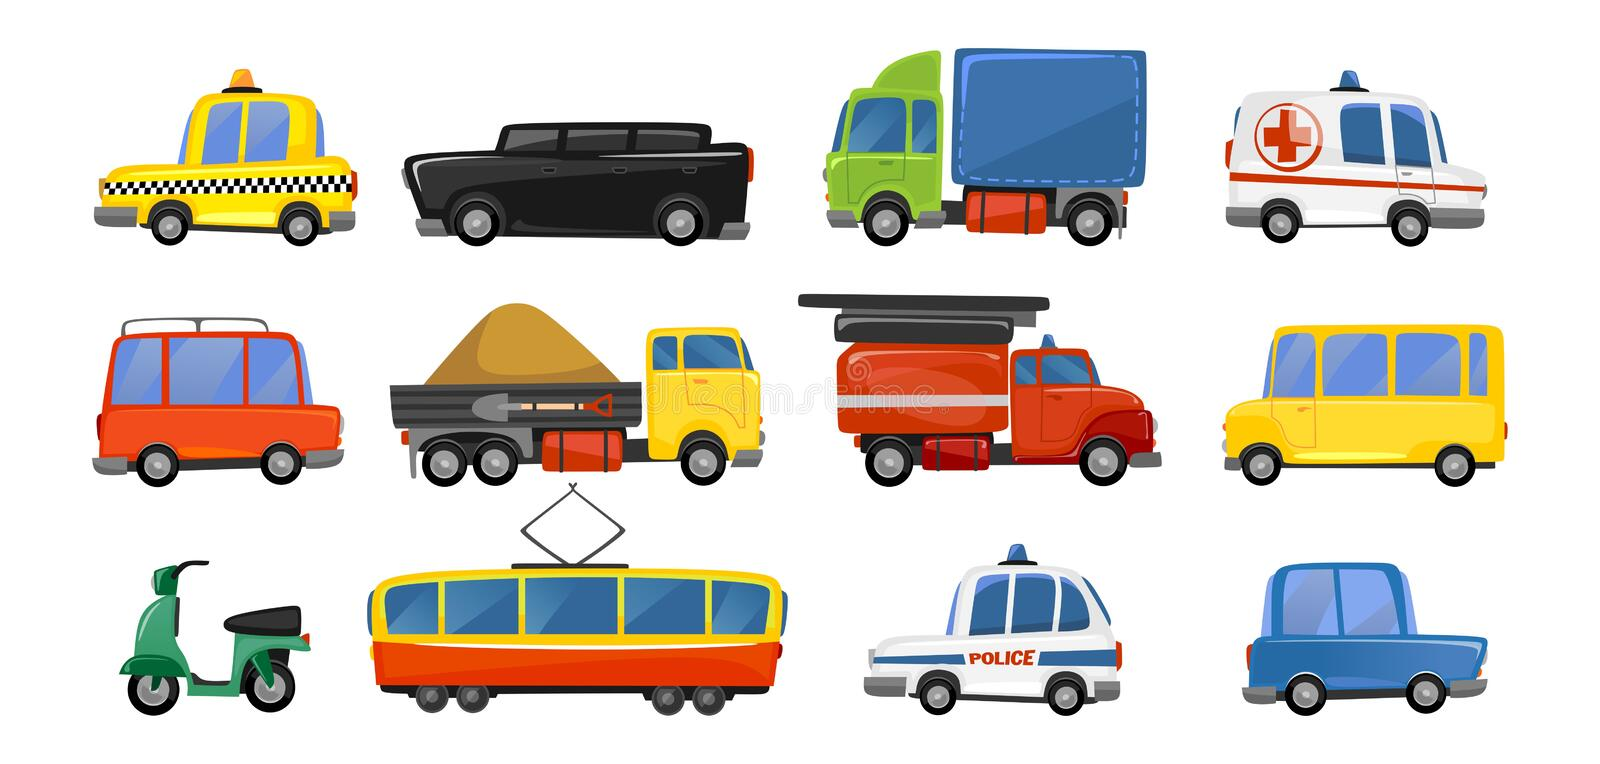 Funny city transport objects in trendy cartoon style. Vector public transport collection. ambulance fire-engine police taxi royalty free illustration